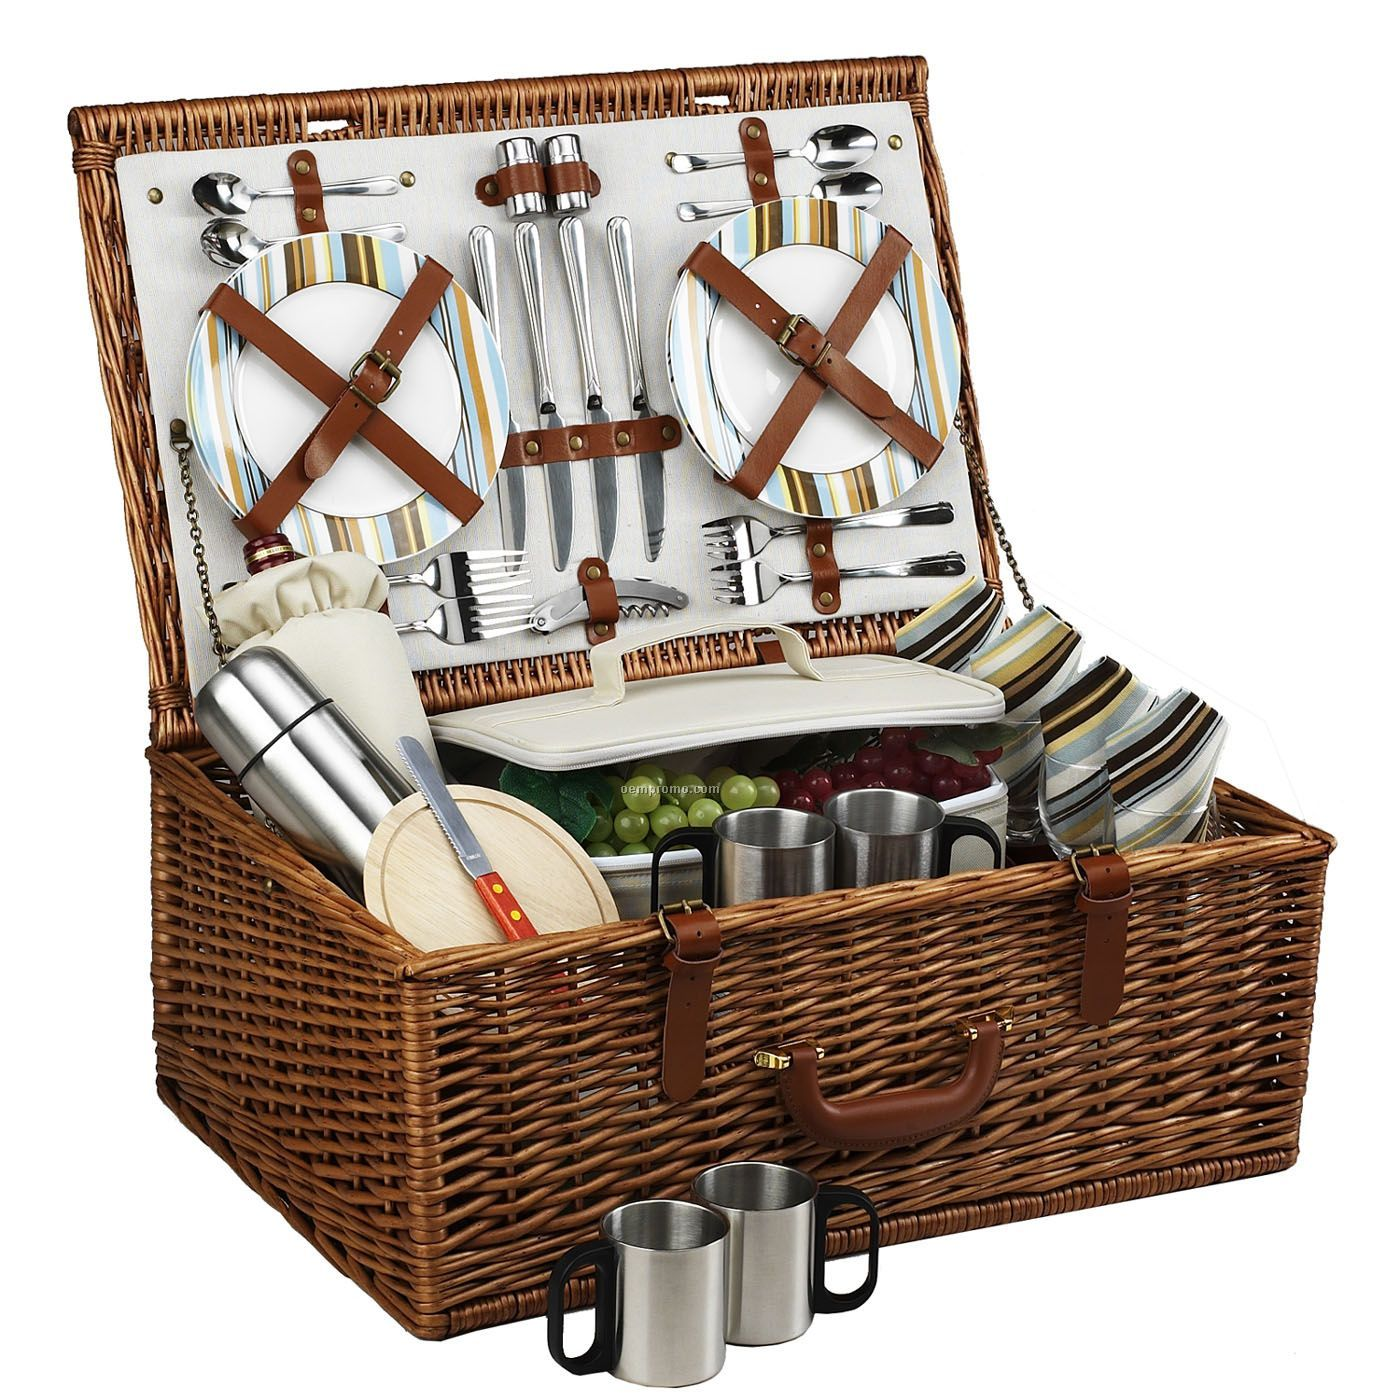 Cheap Picnic Basket For 4 : Dorset picnic basket for four with coffee set china